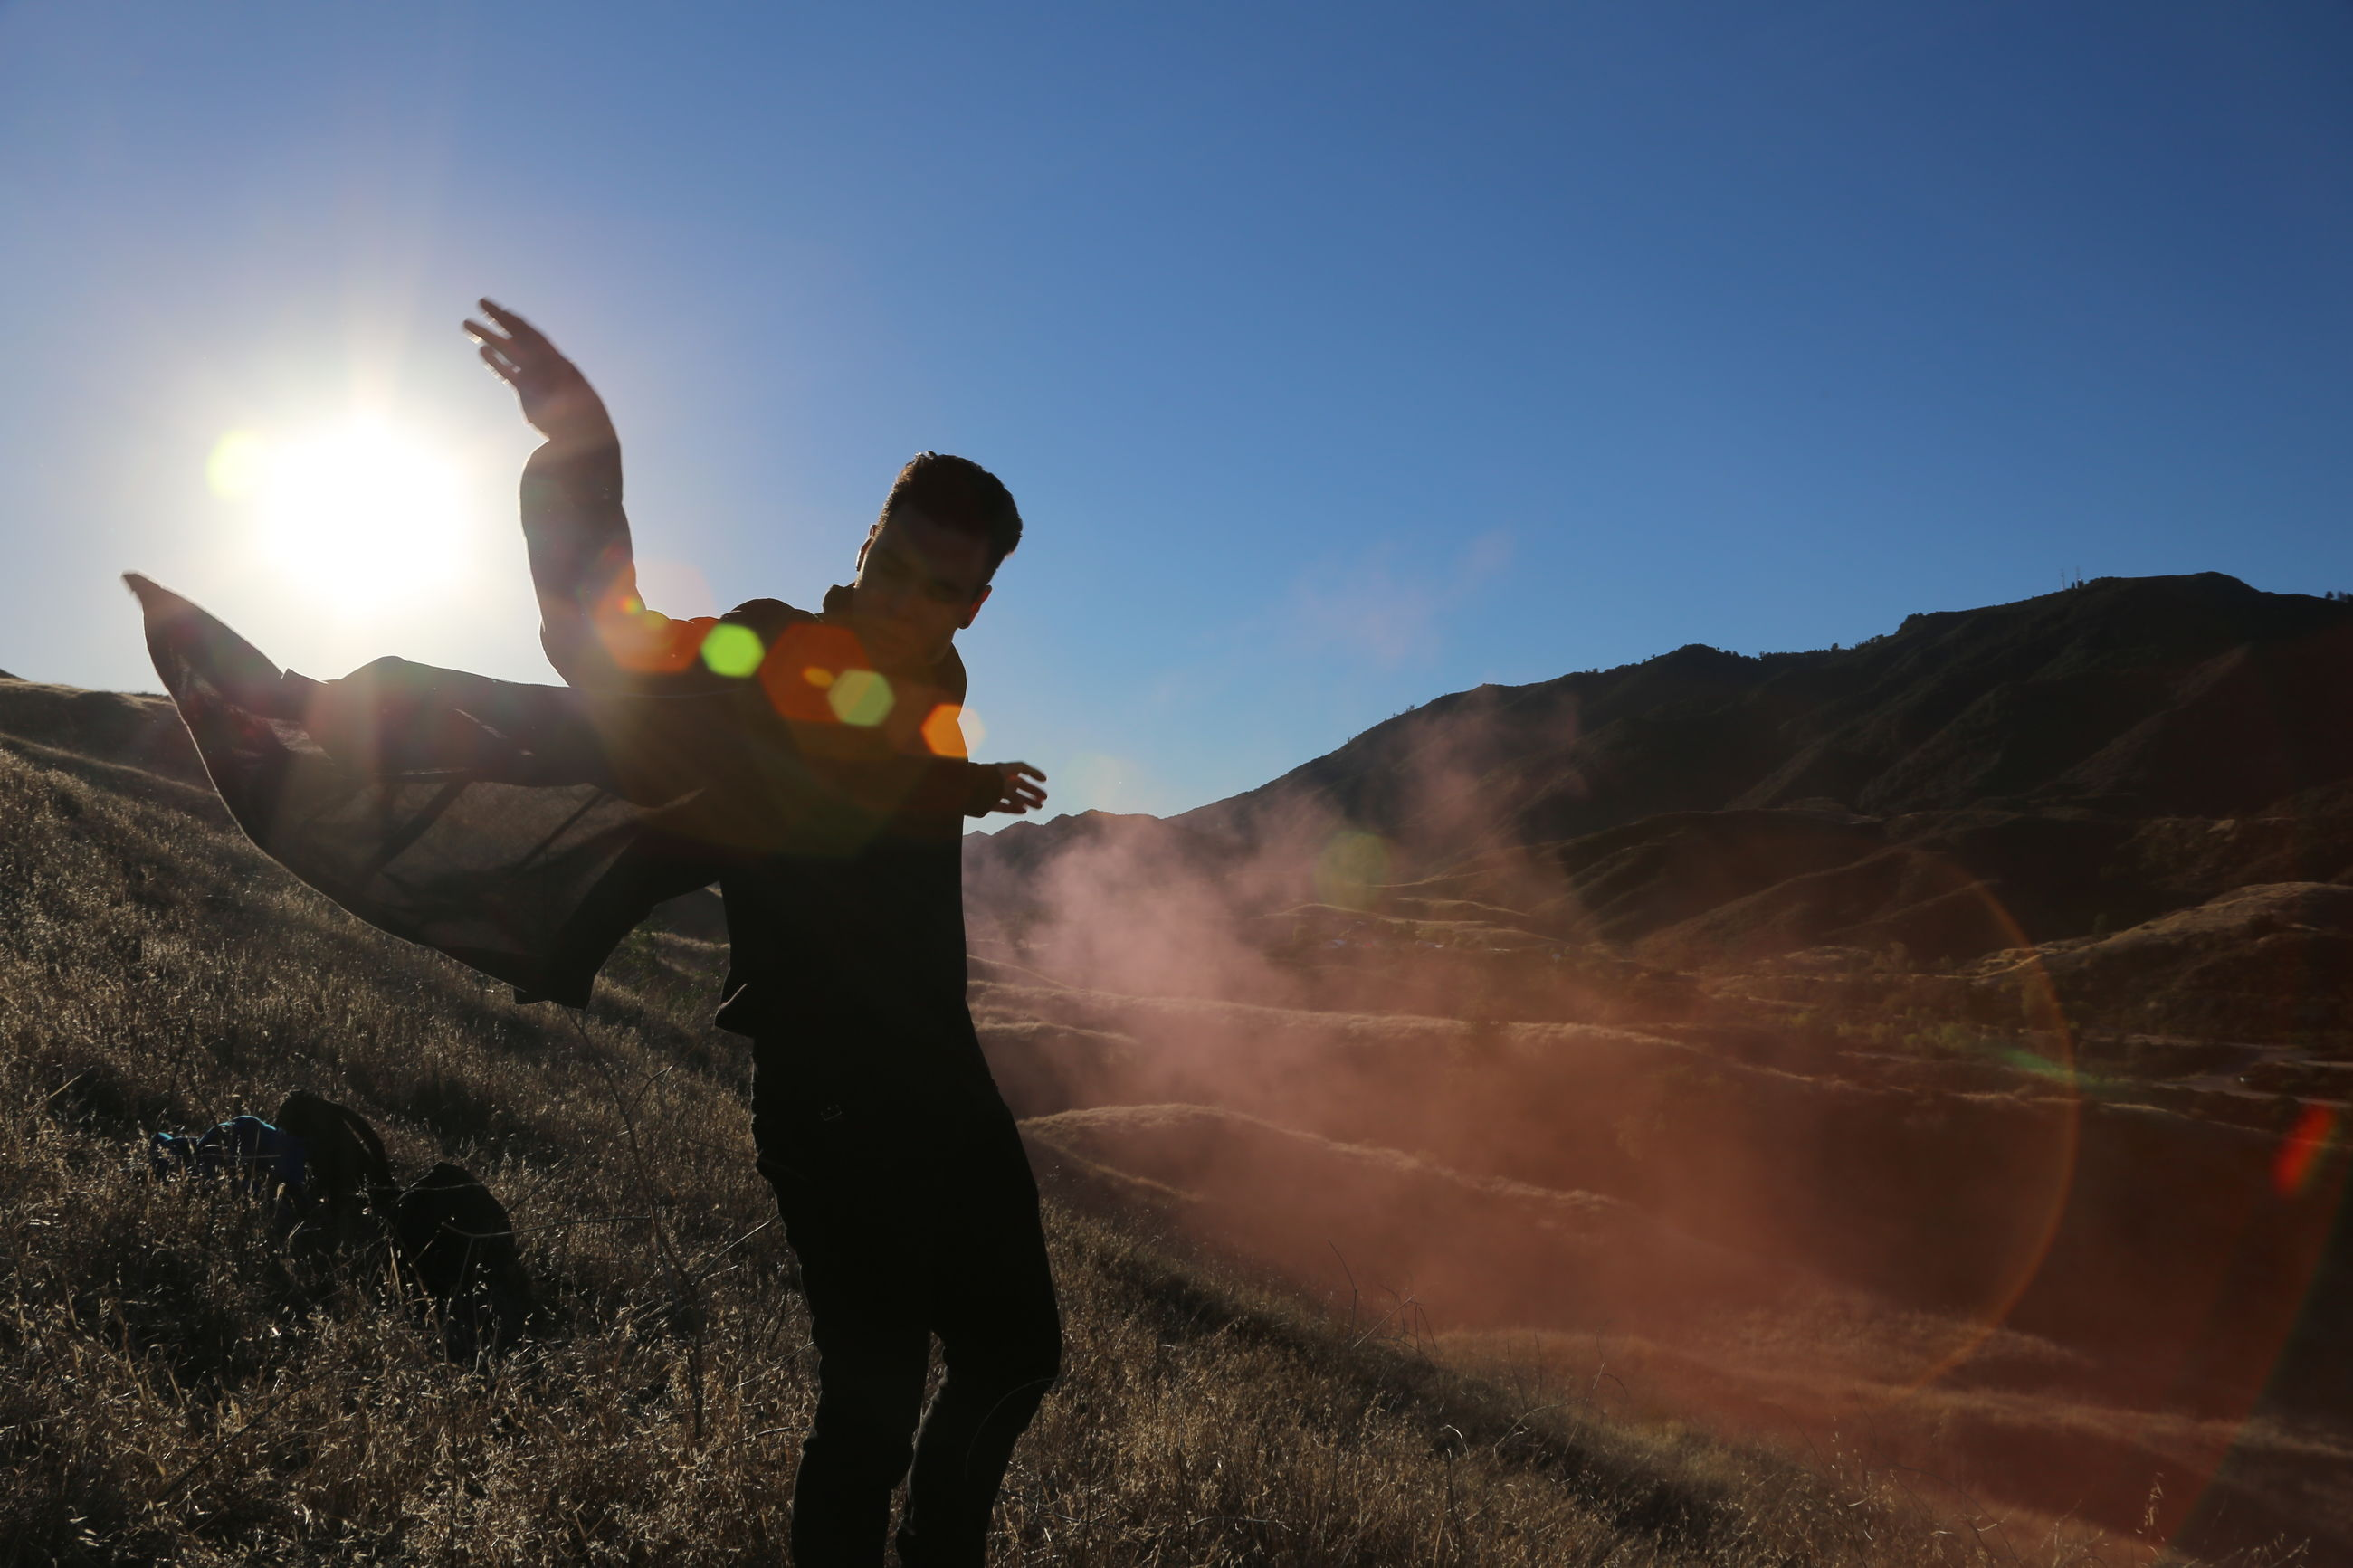 clear sky, silhouette, sun, sky, sunlight, blue, standing, lifestyles, mountain, copy space, lens flare, leisure activity, men, sunset, sunbeam, full length, nature, outdoors